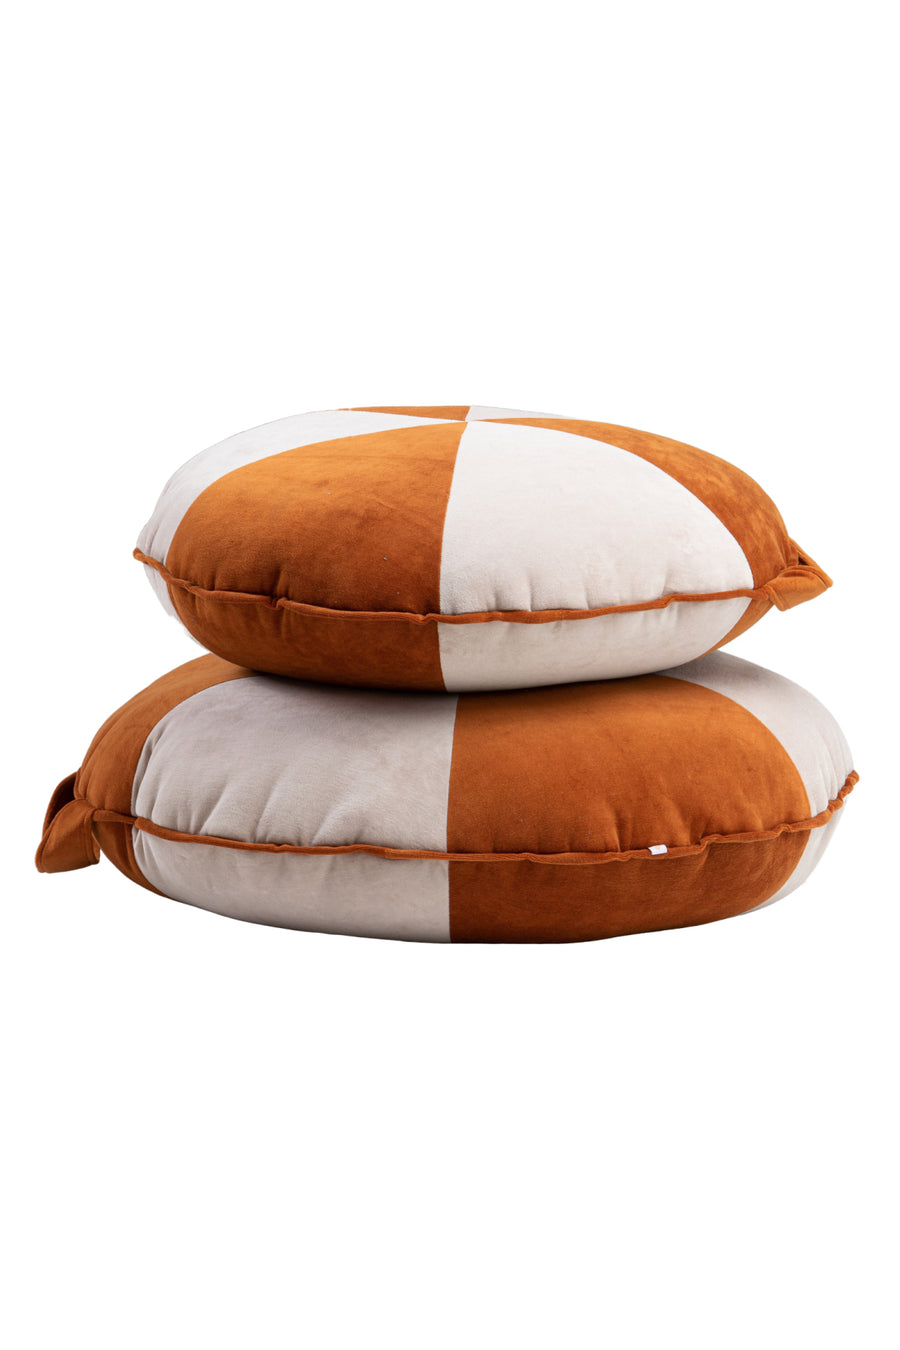 Cinnamon & Beige Cookie Beanbag